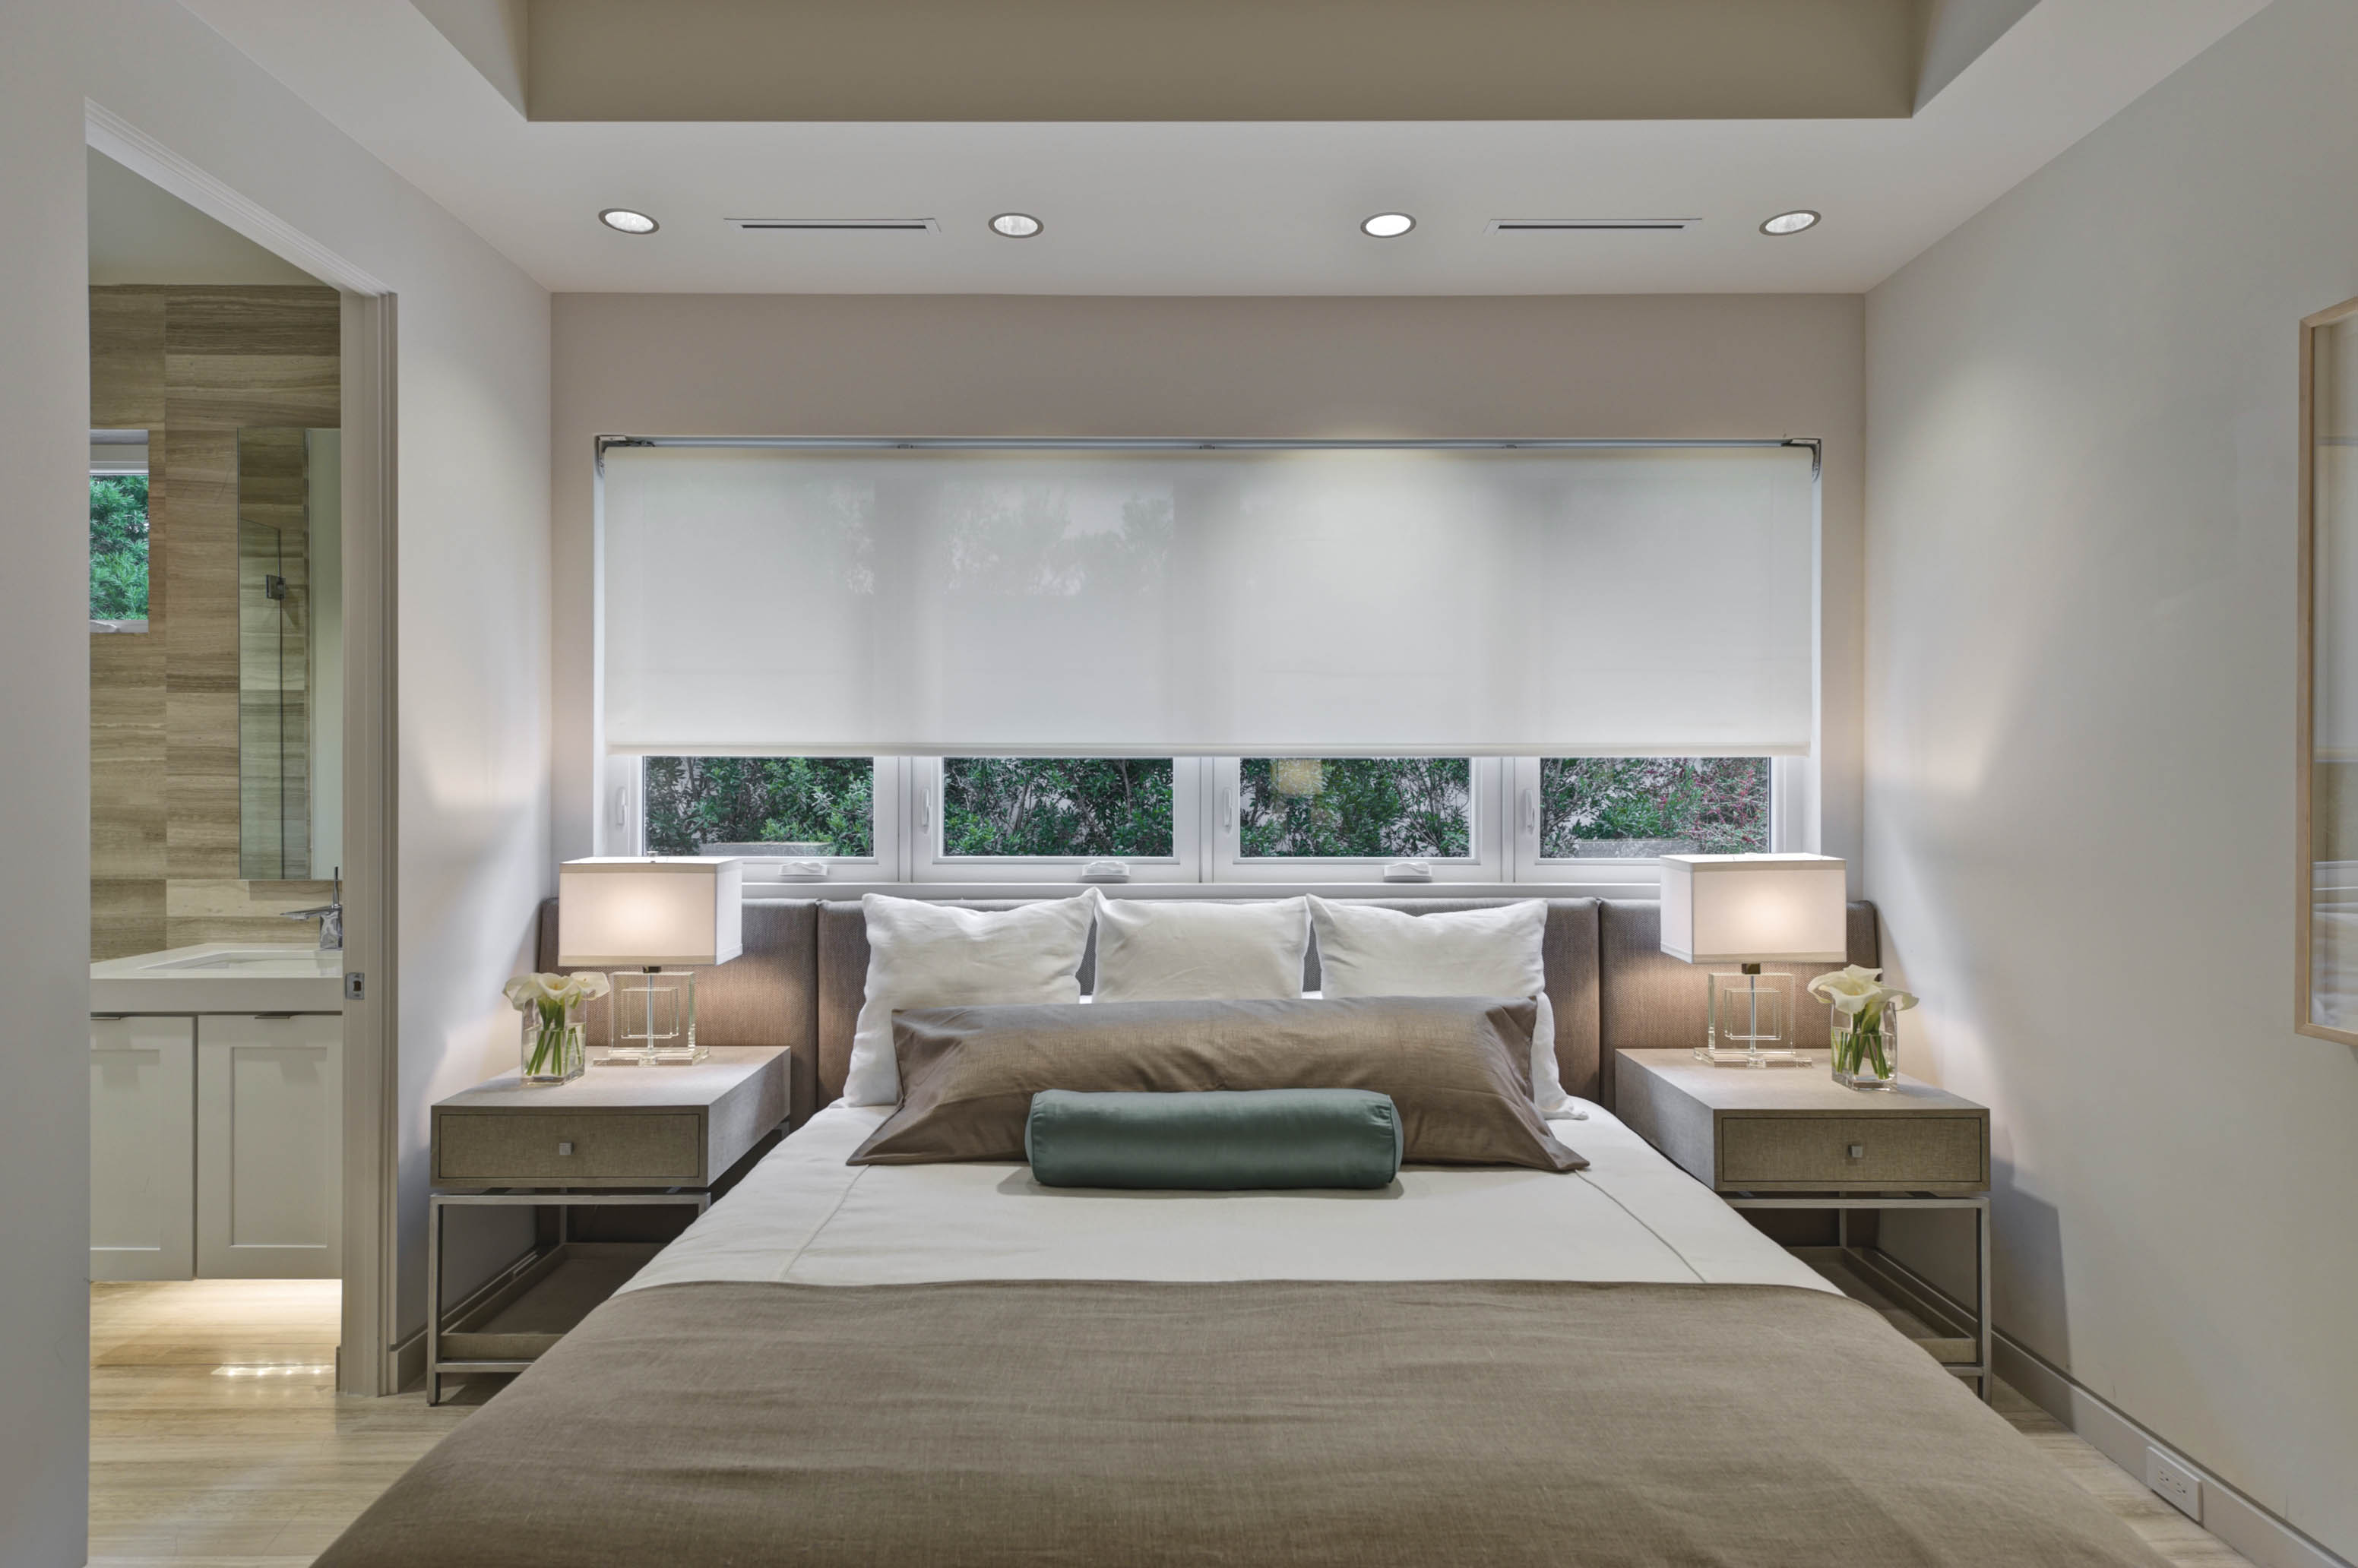 save energy at home with led lighting modernize - Incorporating Leds Into Interior Design